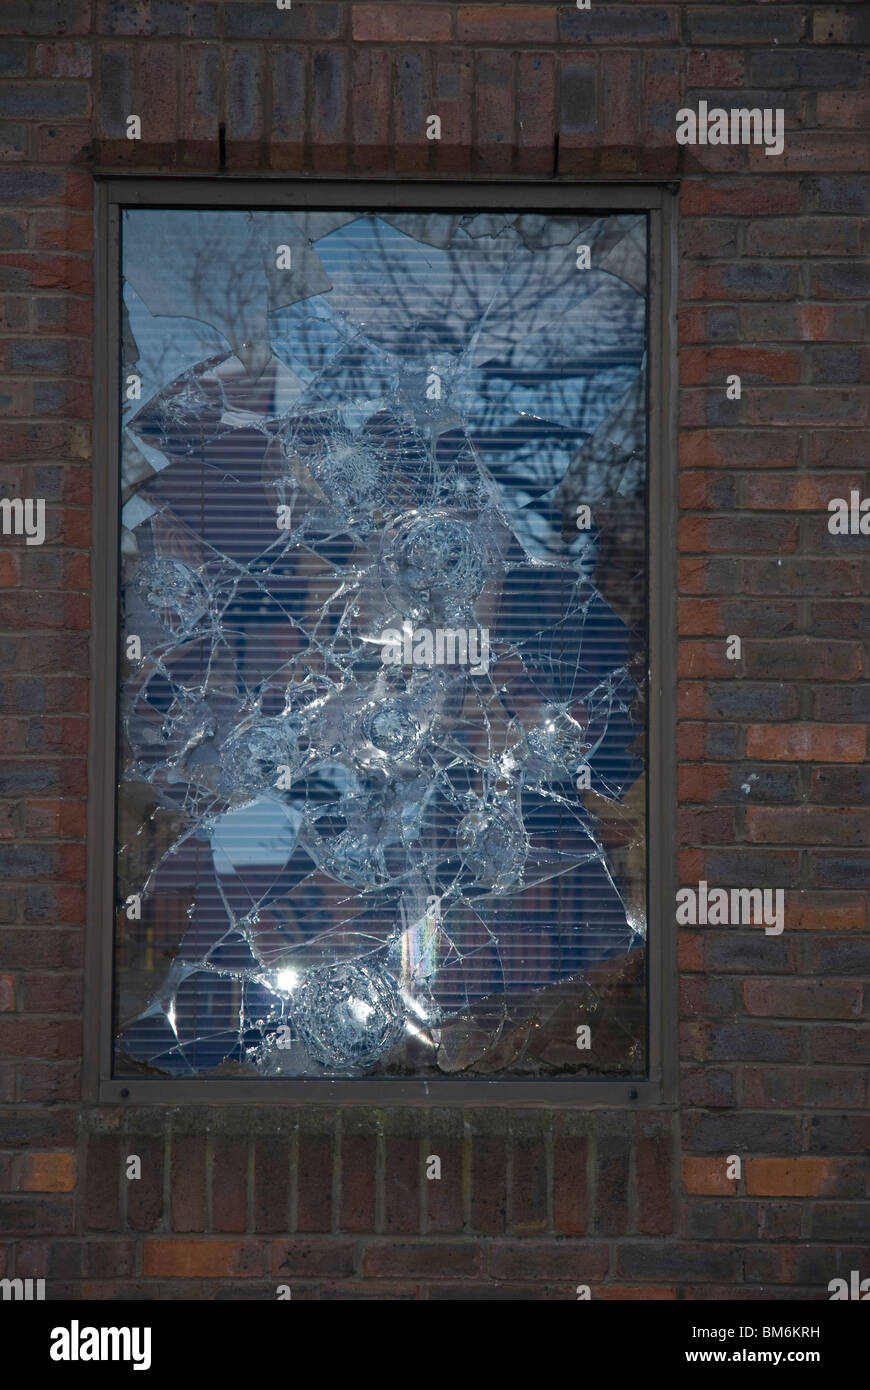 Broken window in a disused building Isleworth, West London England UK - Stock Image